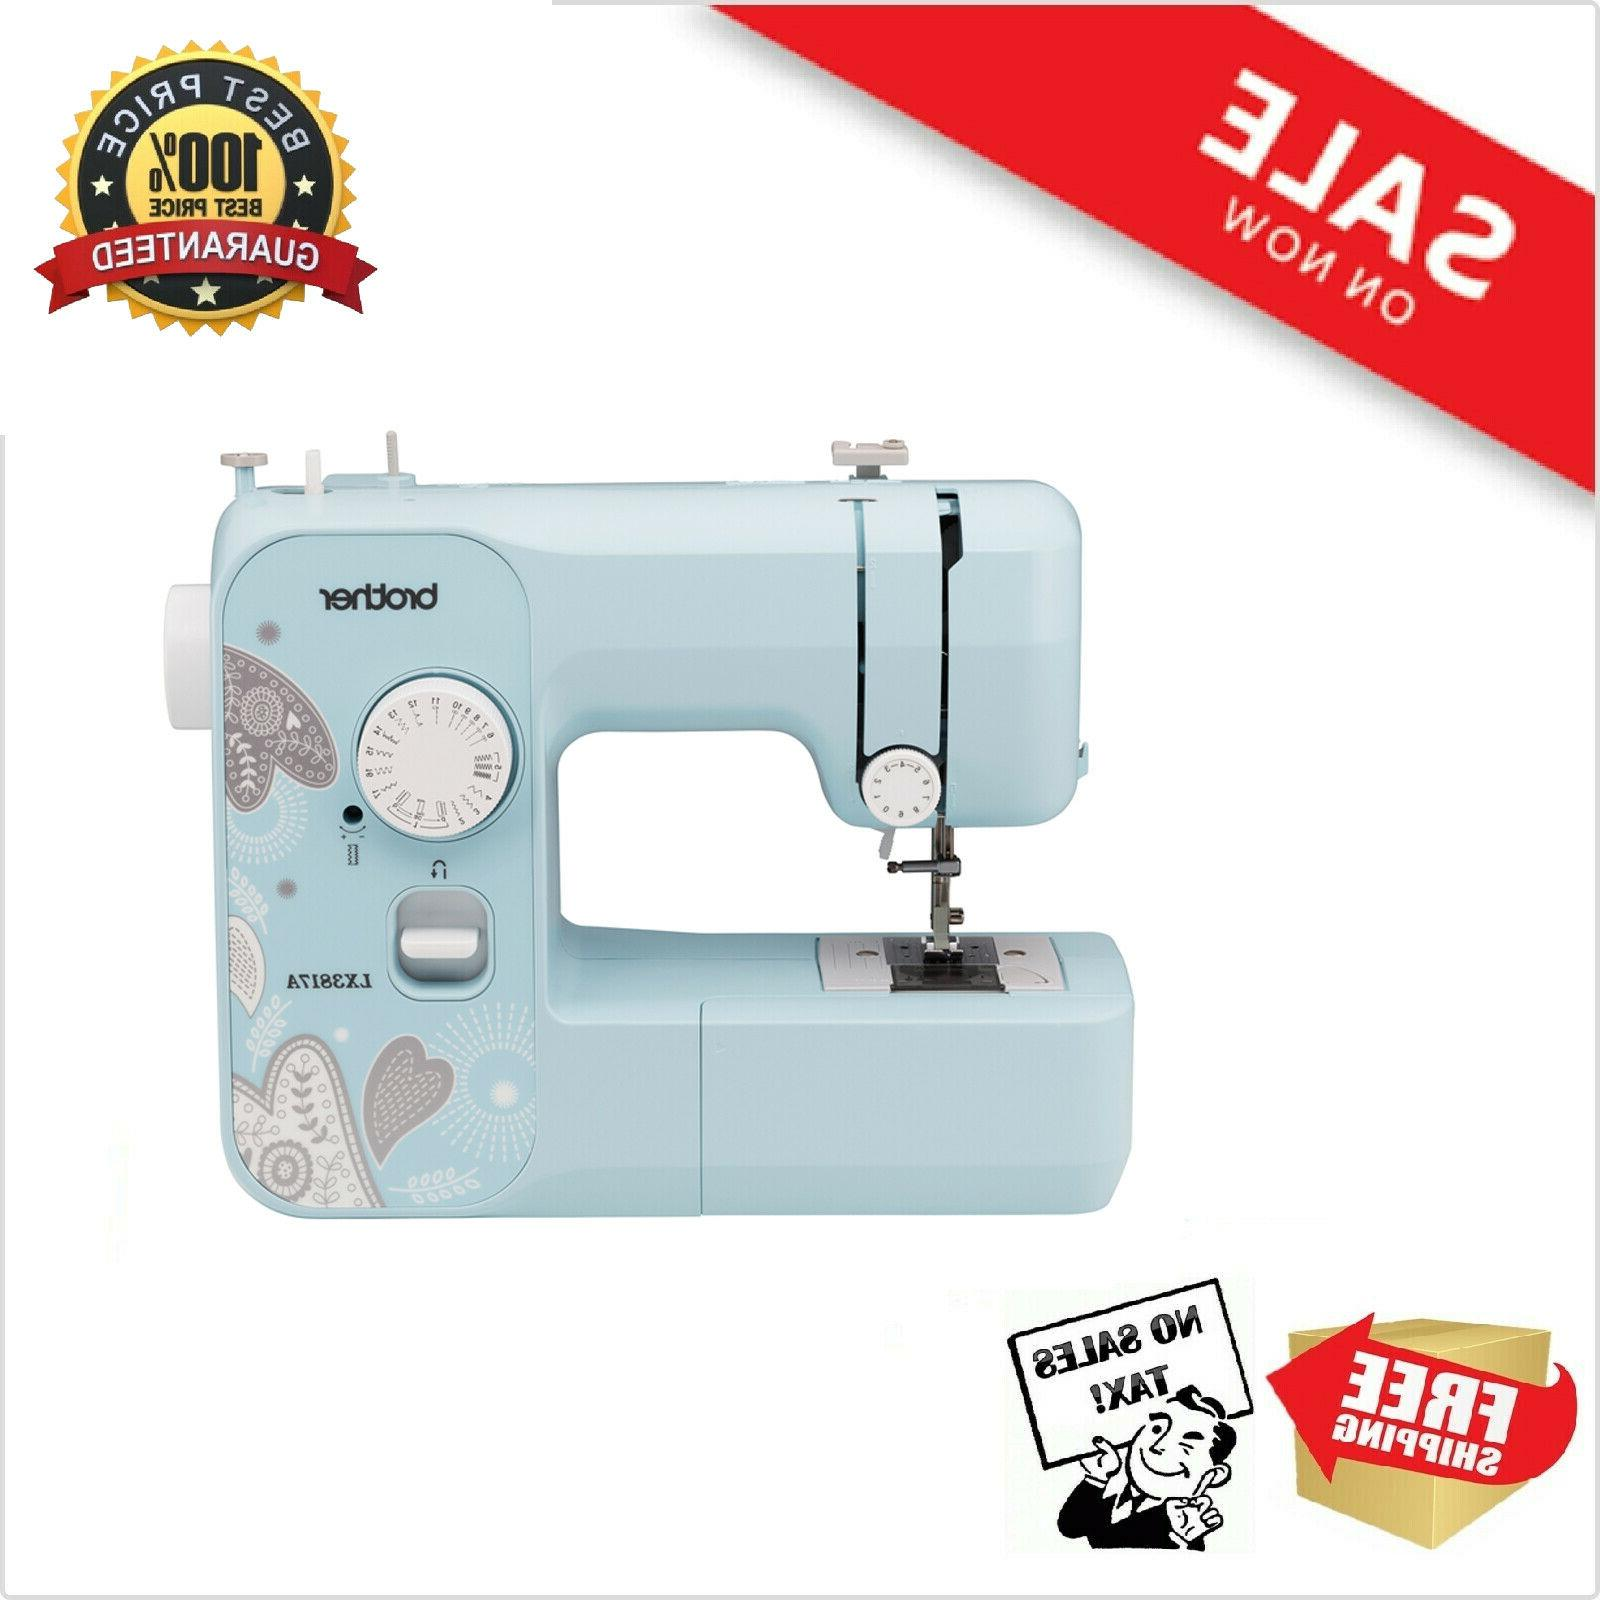 lx3817a 17 stitch full size aqua sewing